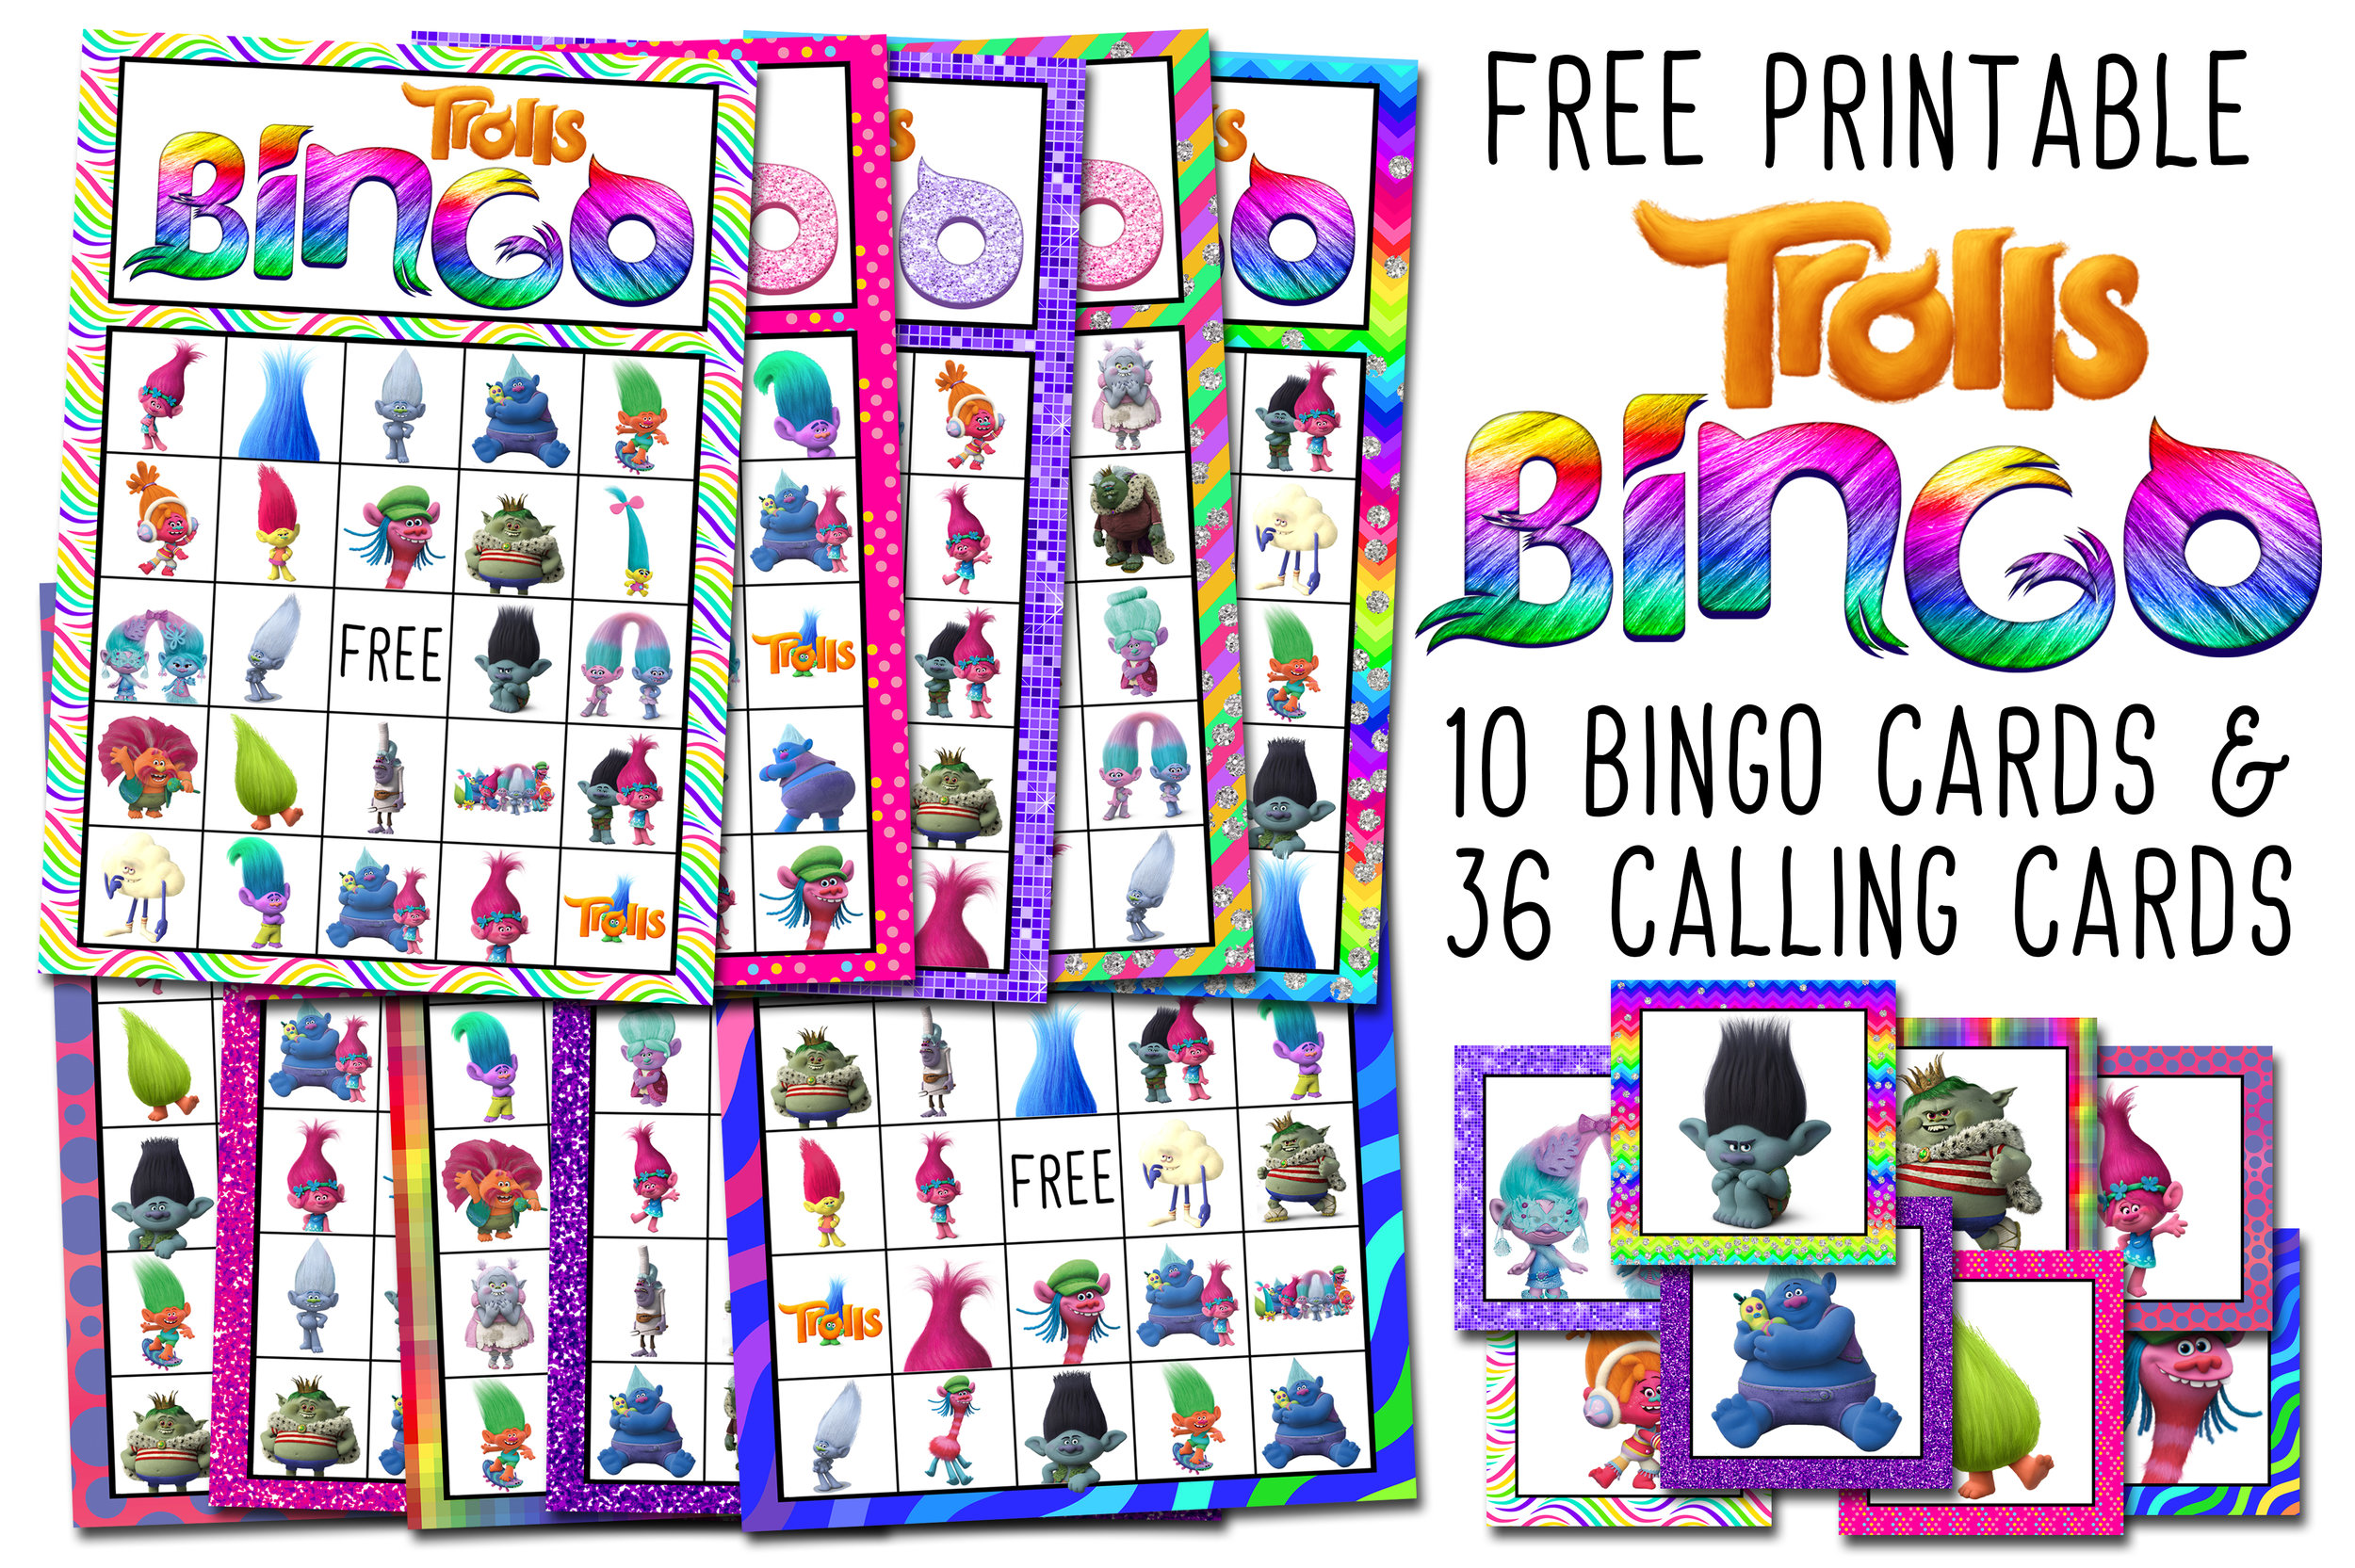 photograph relating to Printable Bingo Cards for Kids identify Trolls Free of charge Printable Bingo Playing cards - Trolls Birthday Get together